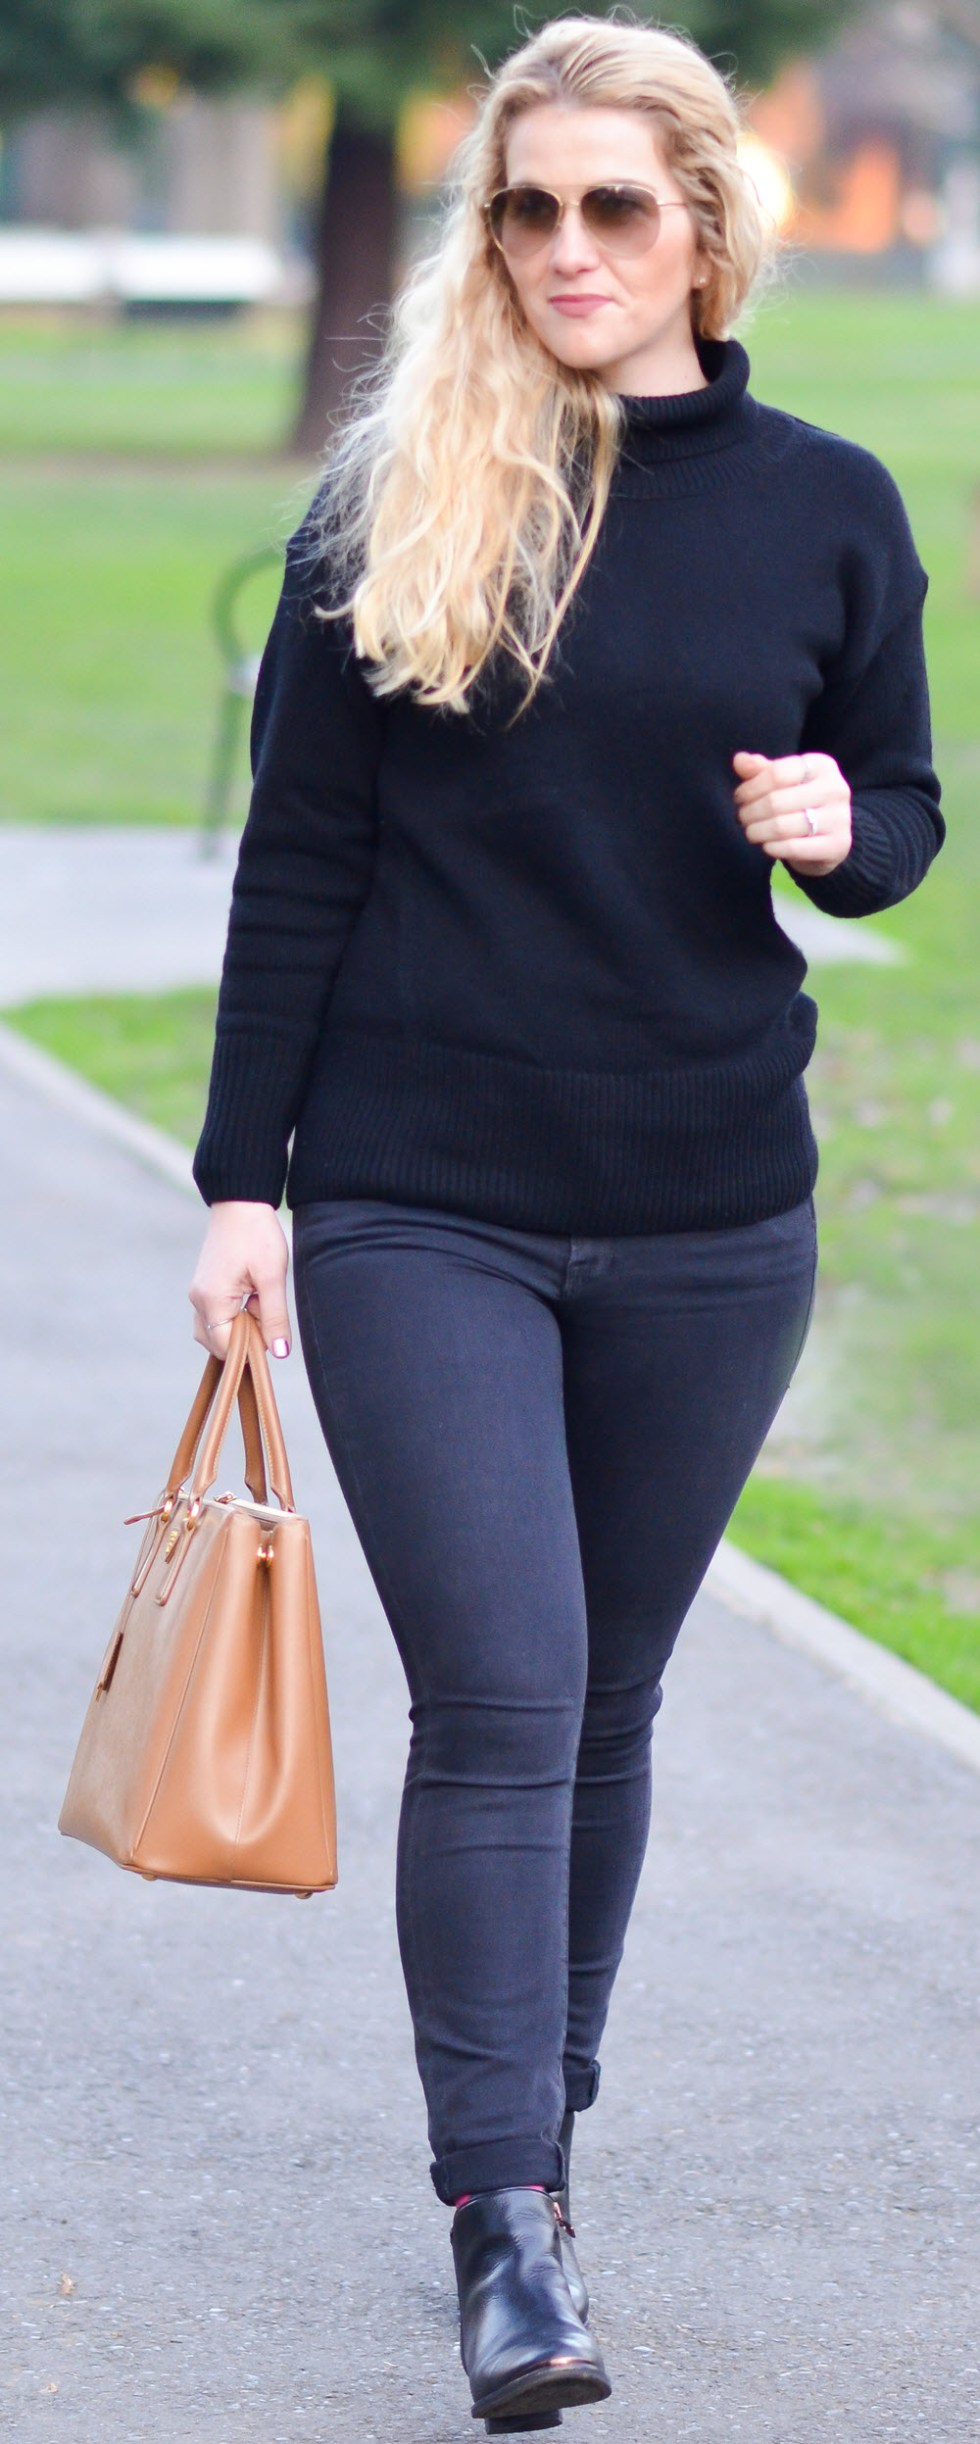 All black street style outfit w. Prada Saffiano Tote. Ankle Boots + Skinny Jeans Cuffed.